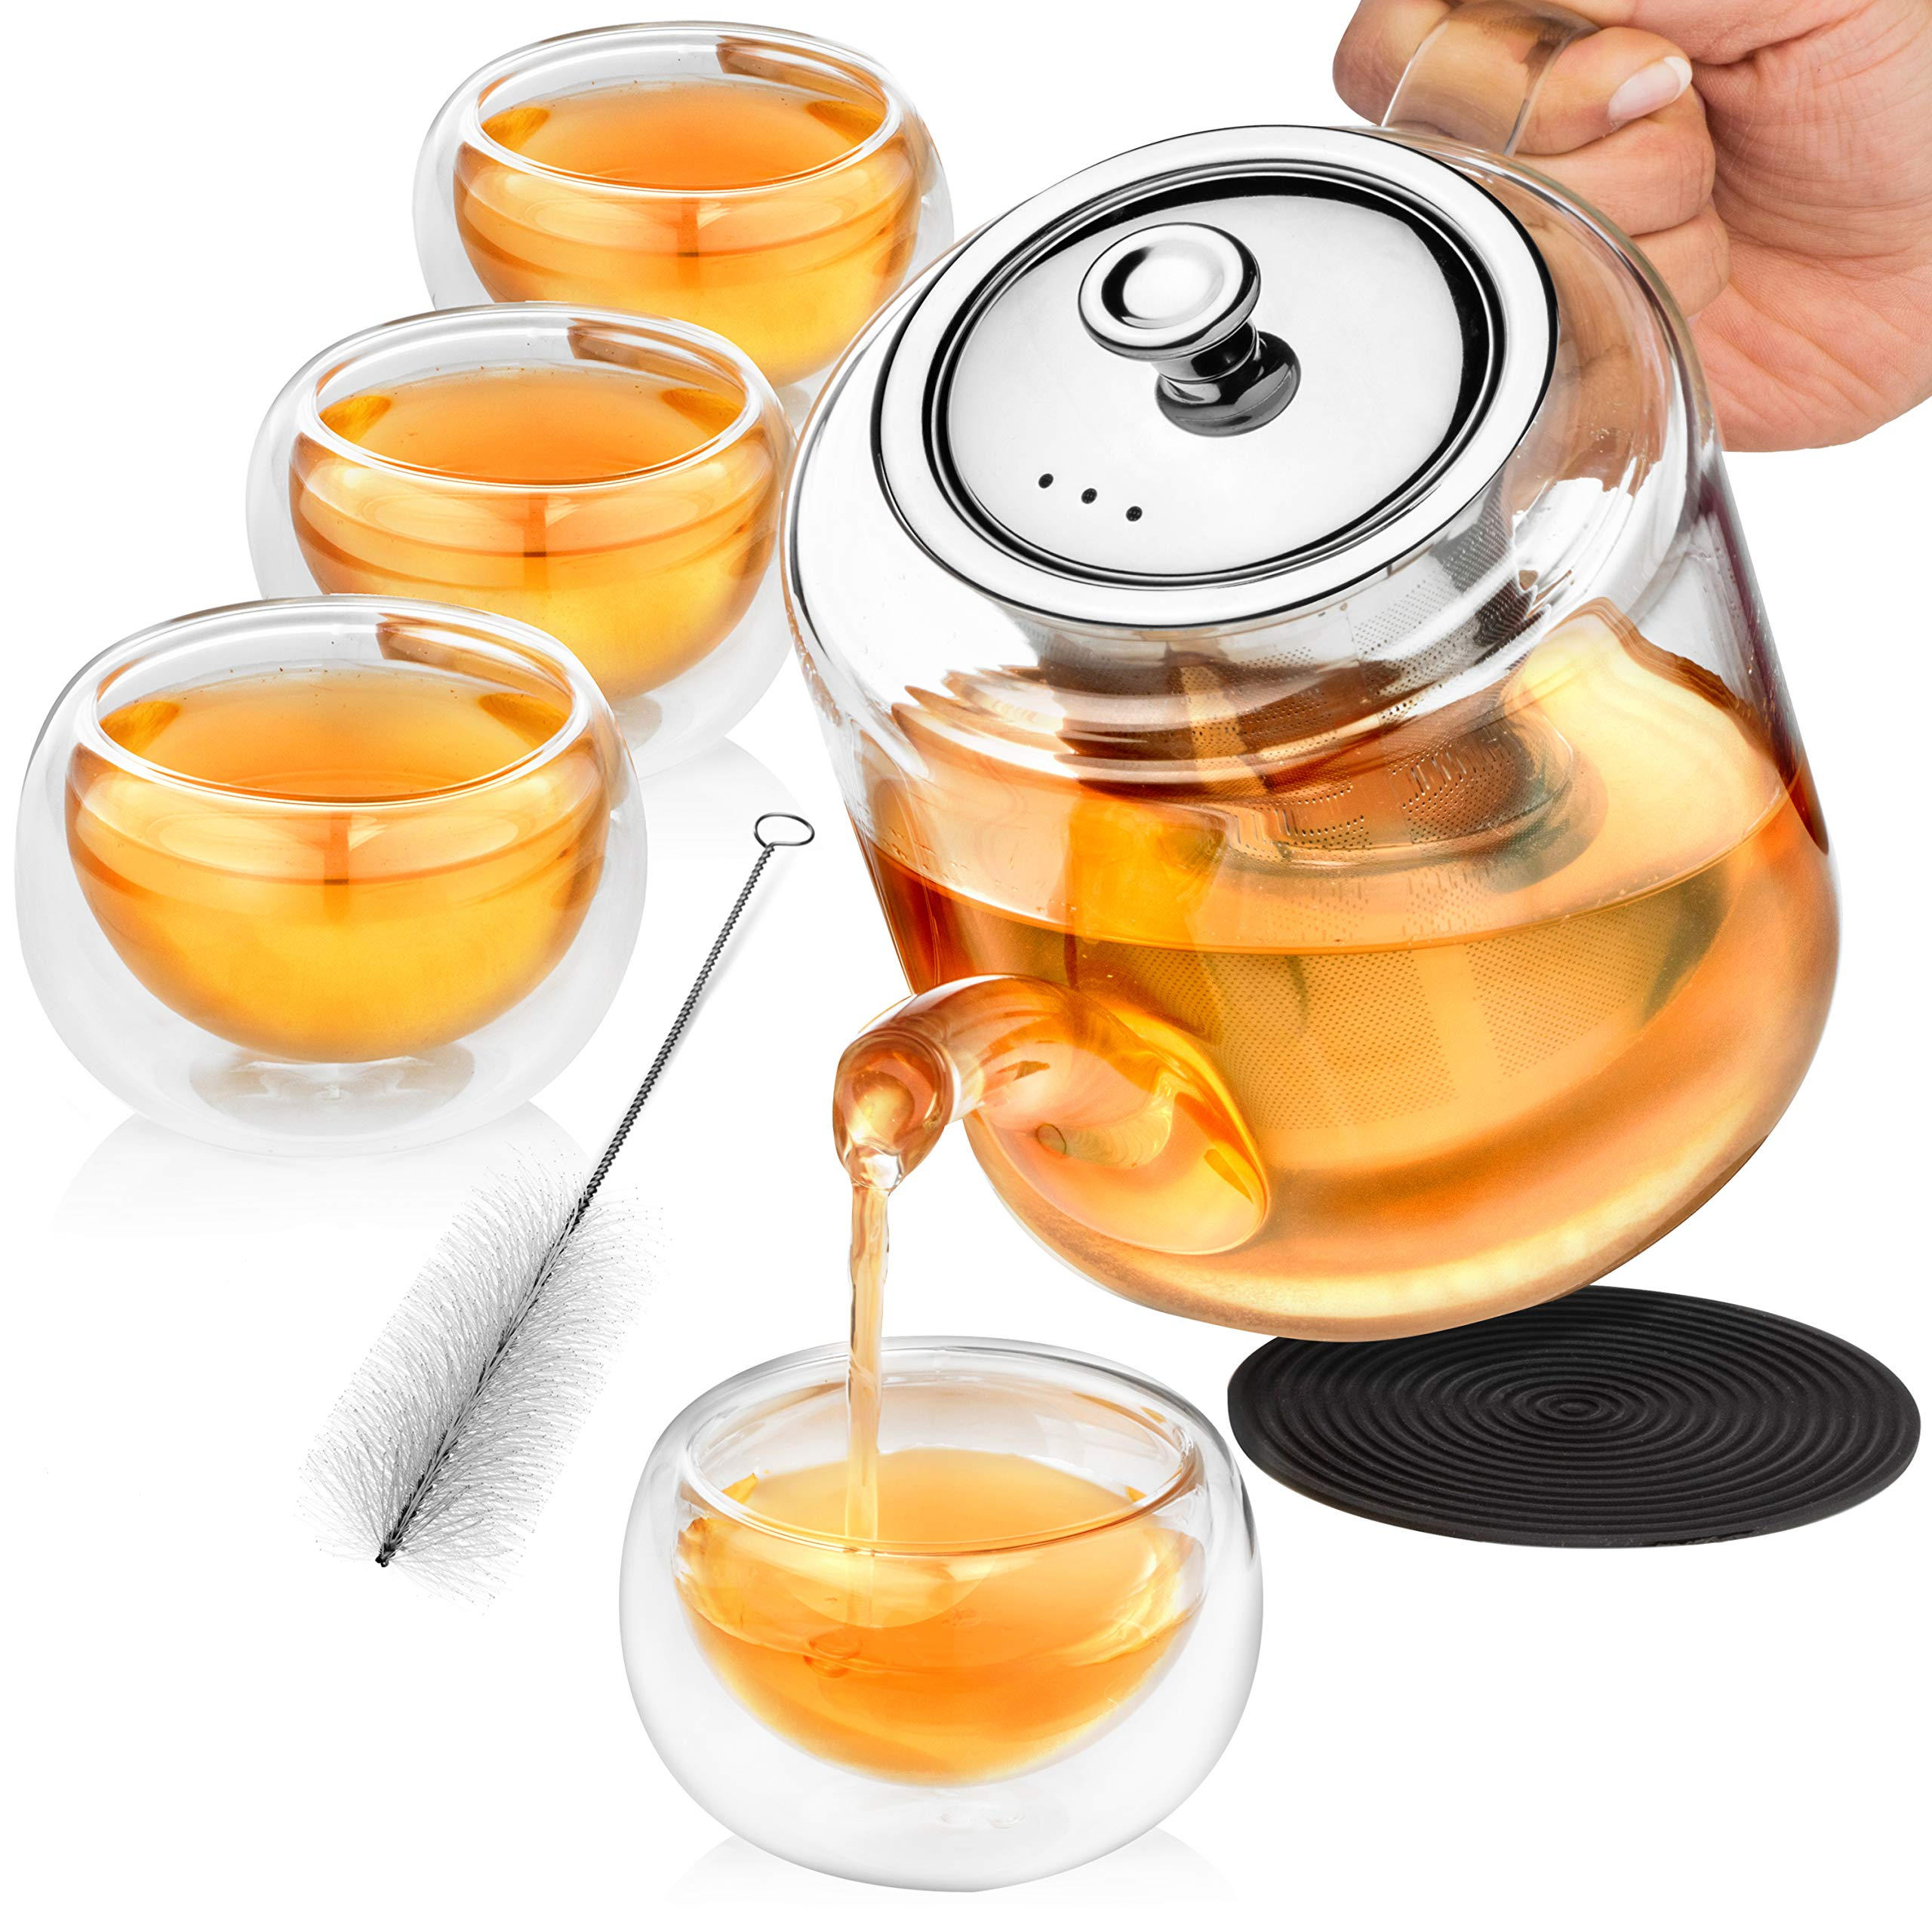 Glass Teapot Set with Infuser for Loose Tea - 1100ml Stove Top Safe Borosilicate Clear Glass Tea Pot with 4 Small Tea Cups, Silicone Trivet, & Cleaning Brush | Perfect Tea Set for Gift or Entertaining